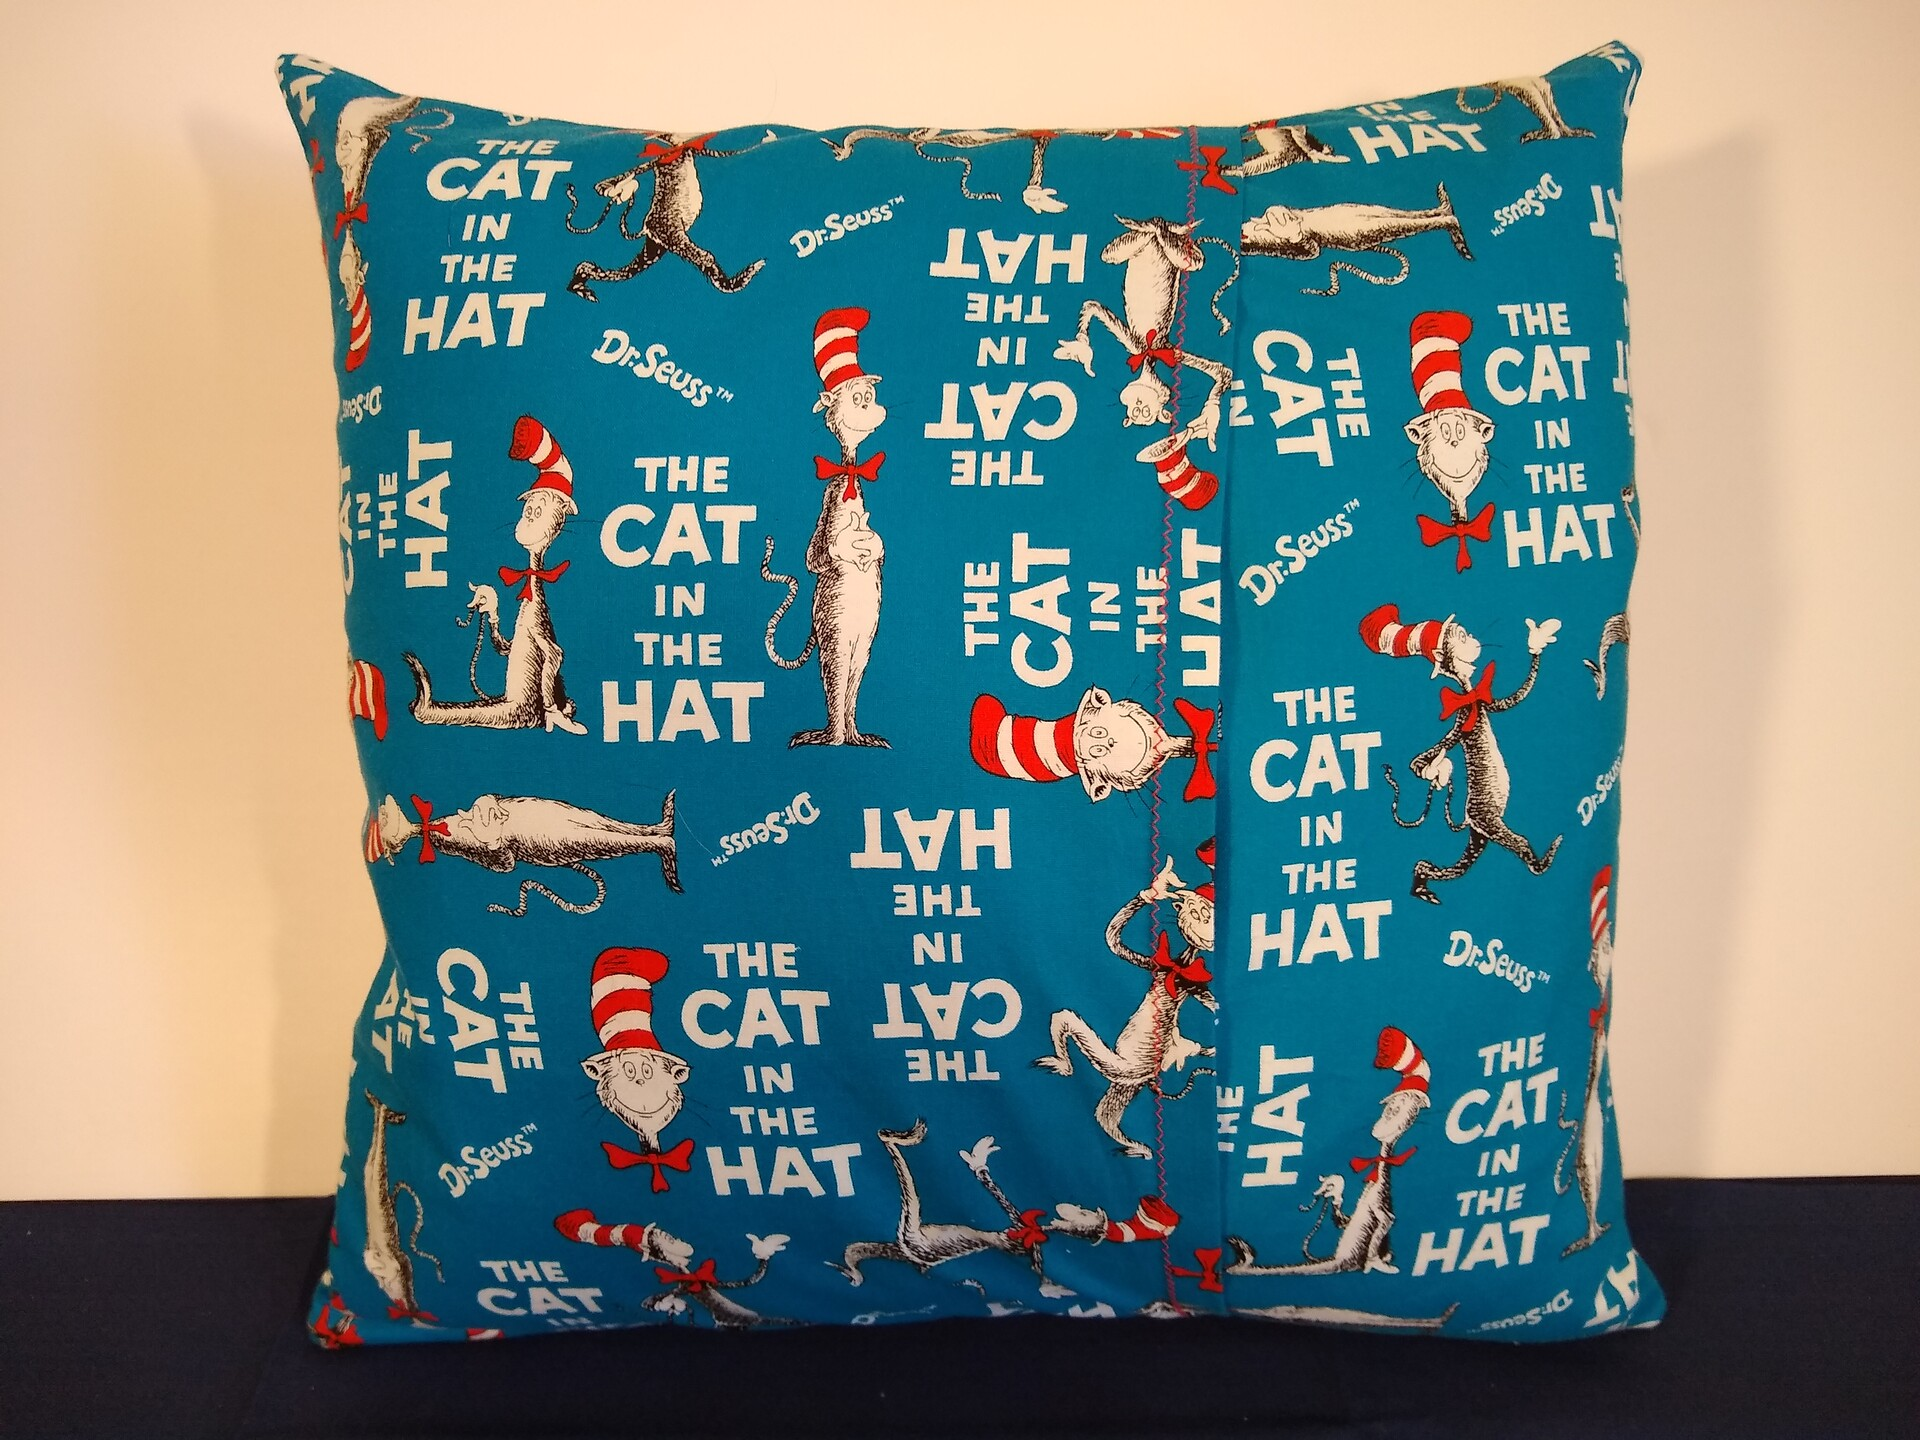 The Cat in the Hat Pillow